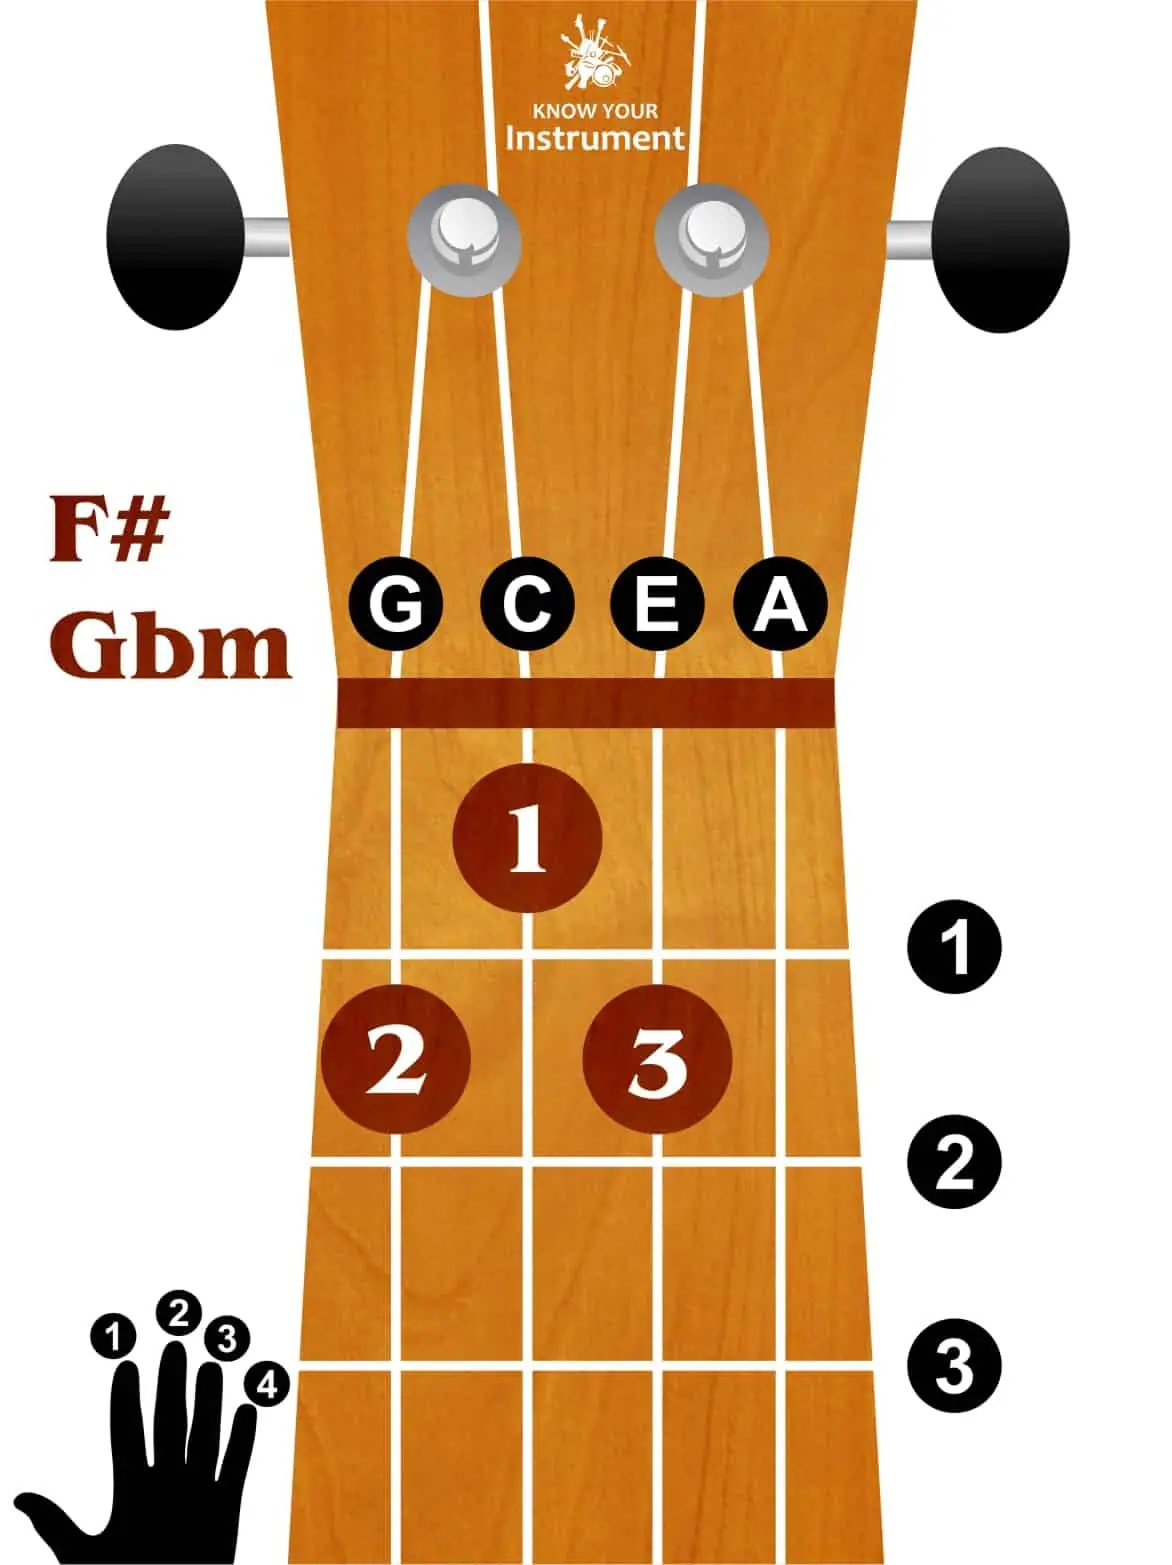 10_F_GB_MINOR - Know Your Instrument